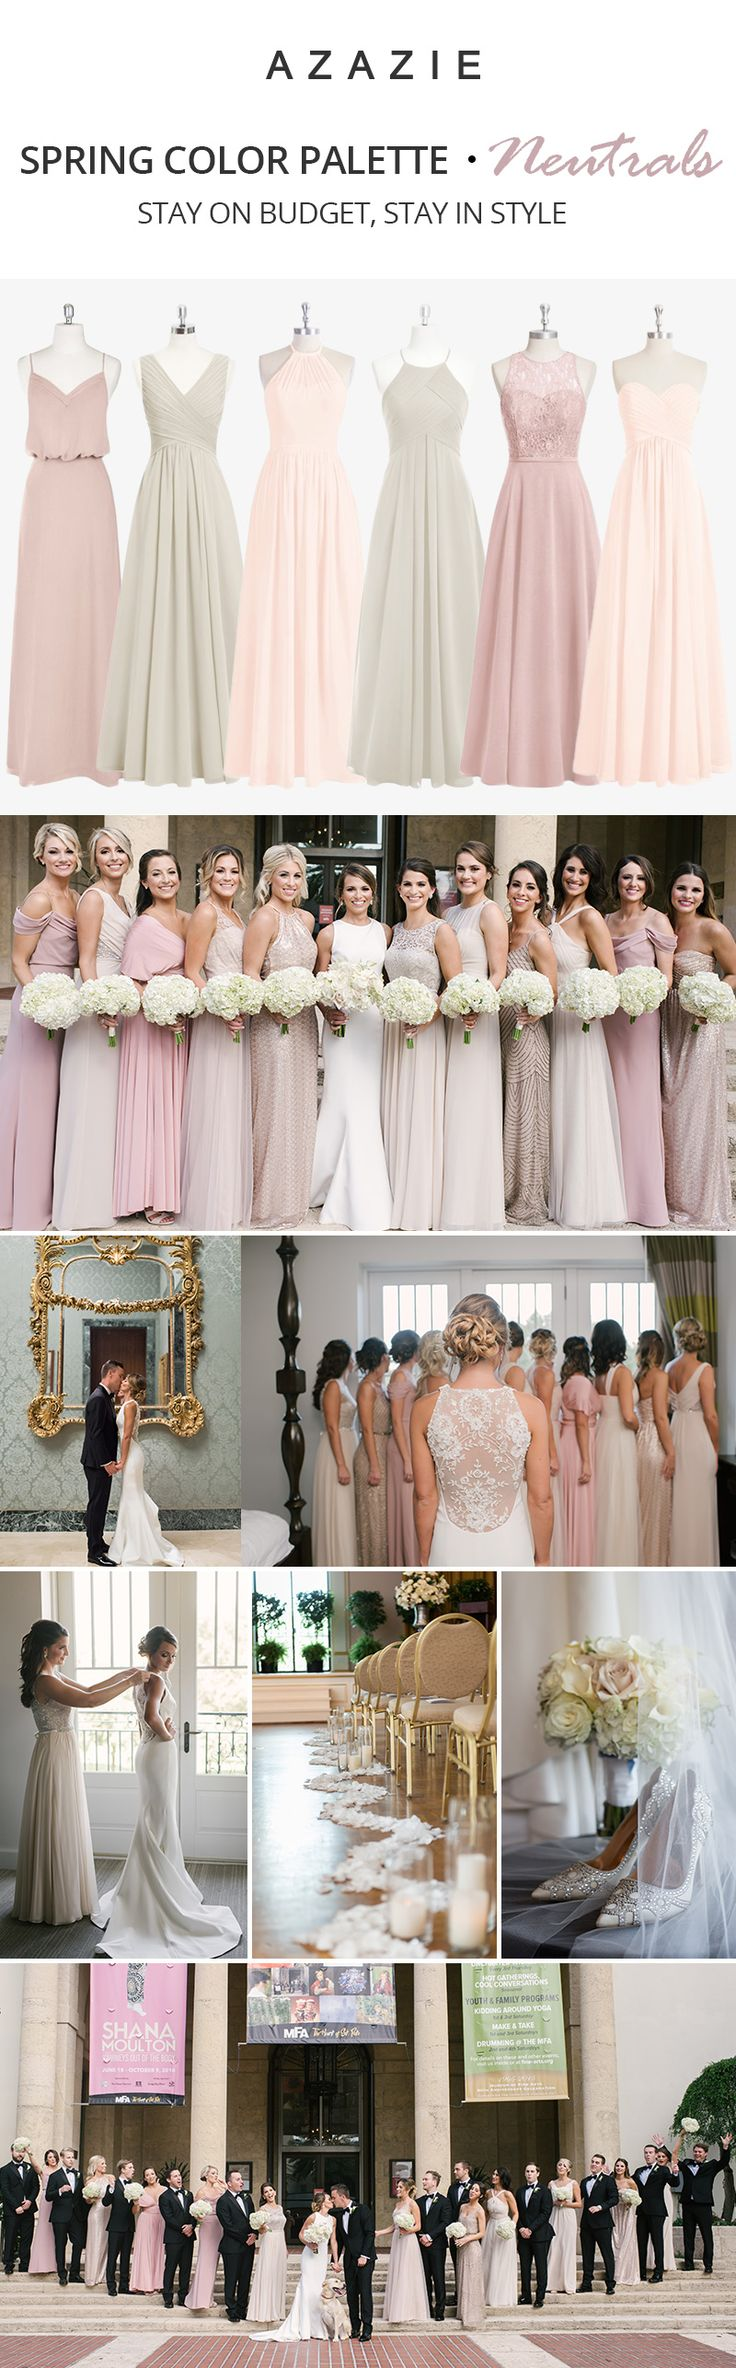 Neutrals never go out of style! Check out our 200+ styles in gorgeous neutral colors, perfect for any time of the year! Wedding tip: Order color swatches before you purchase your dresses for stress free wedding planning! | Photos courtesy of kaitlynphippsphotography.com